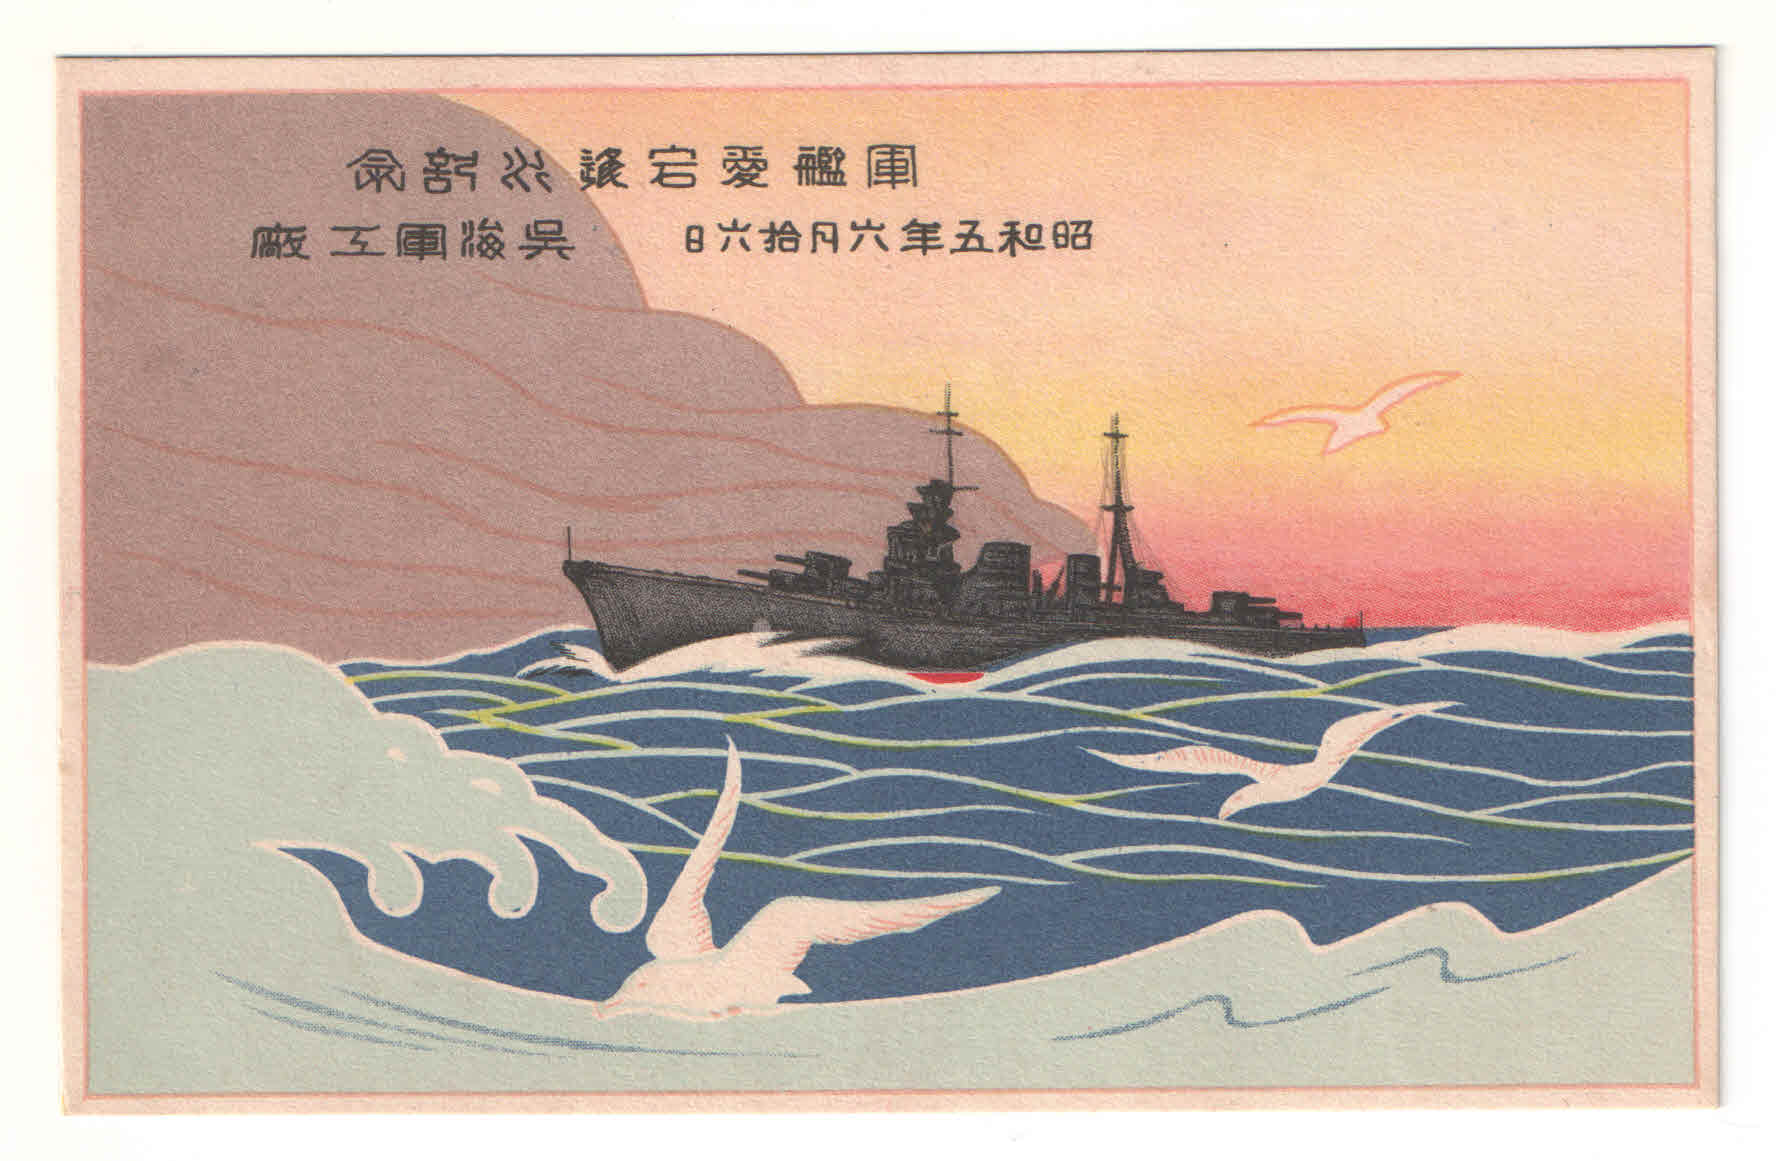 Very Rare Antique Japanese Military 1930 Cruiser Atago Launch Commemoration Postcards Set